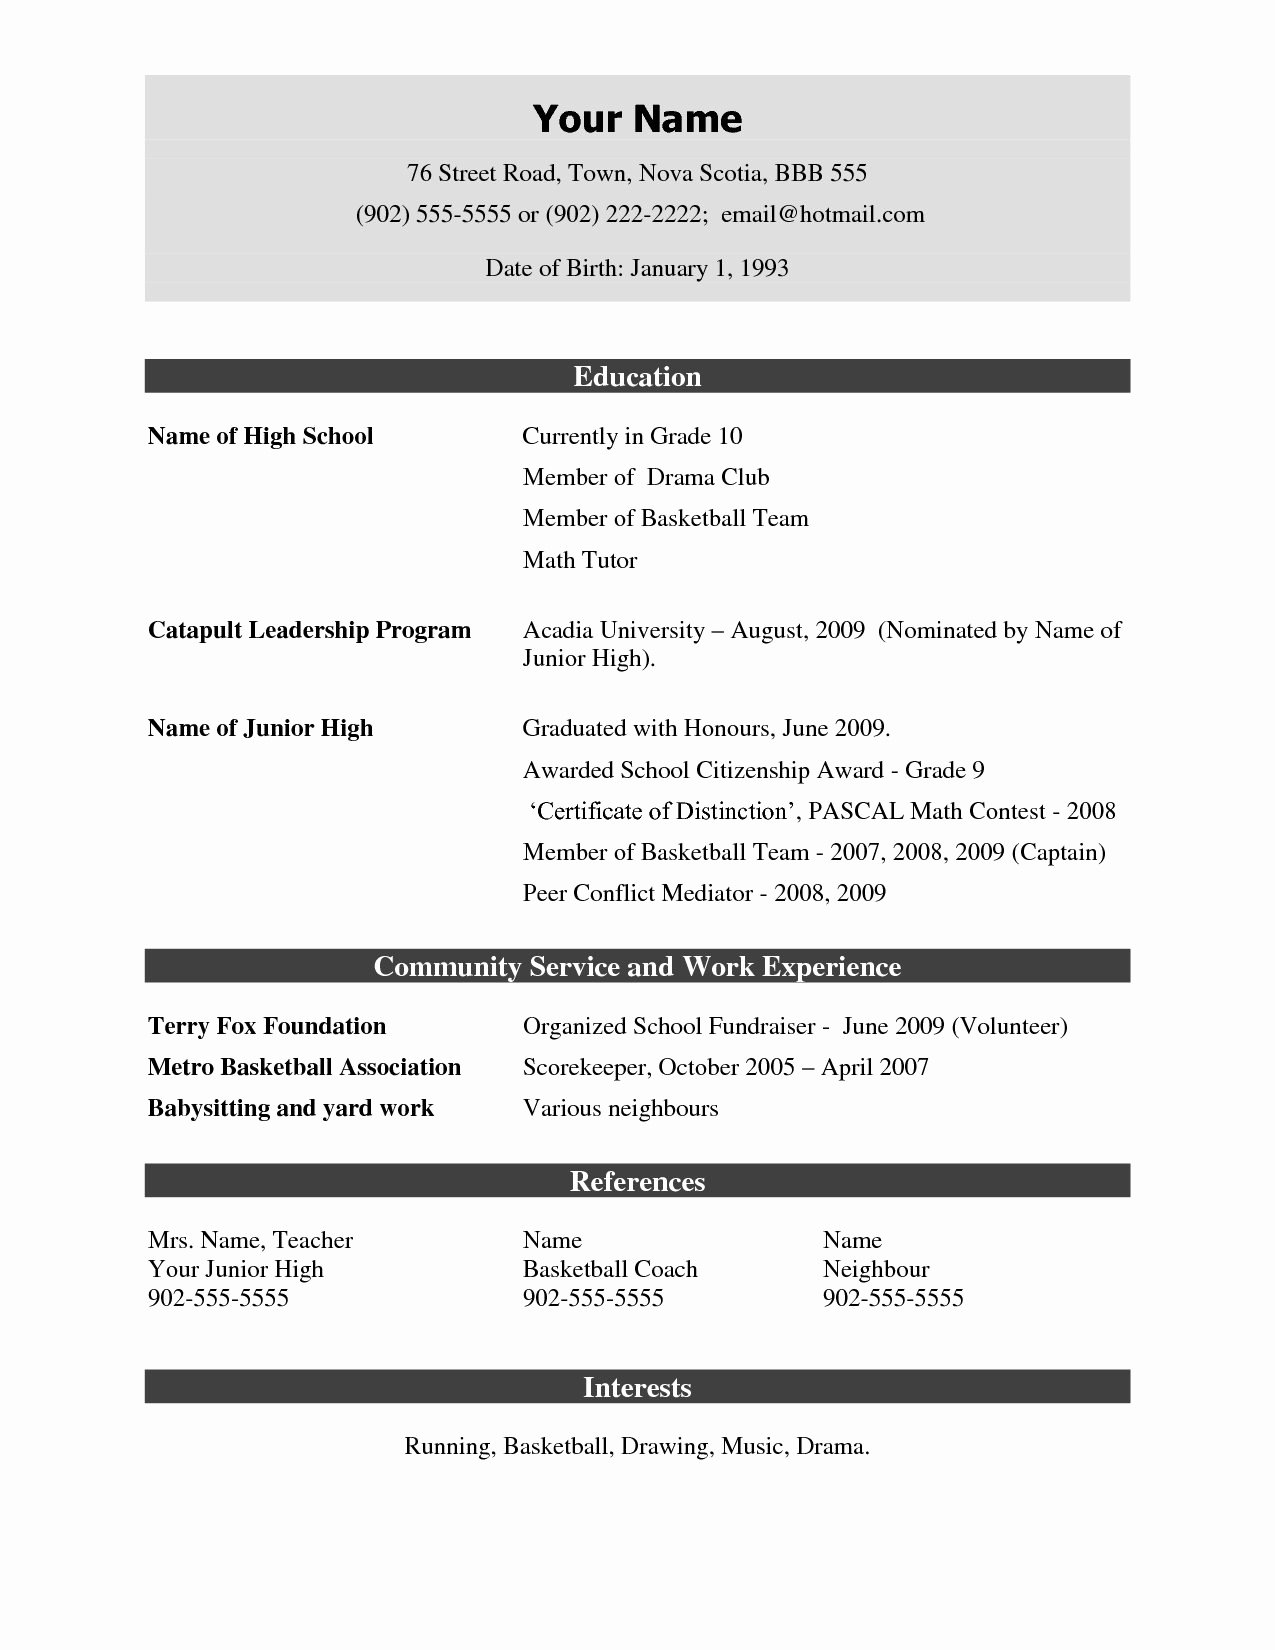 Resume format Download – Resume Template Ideas